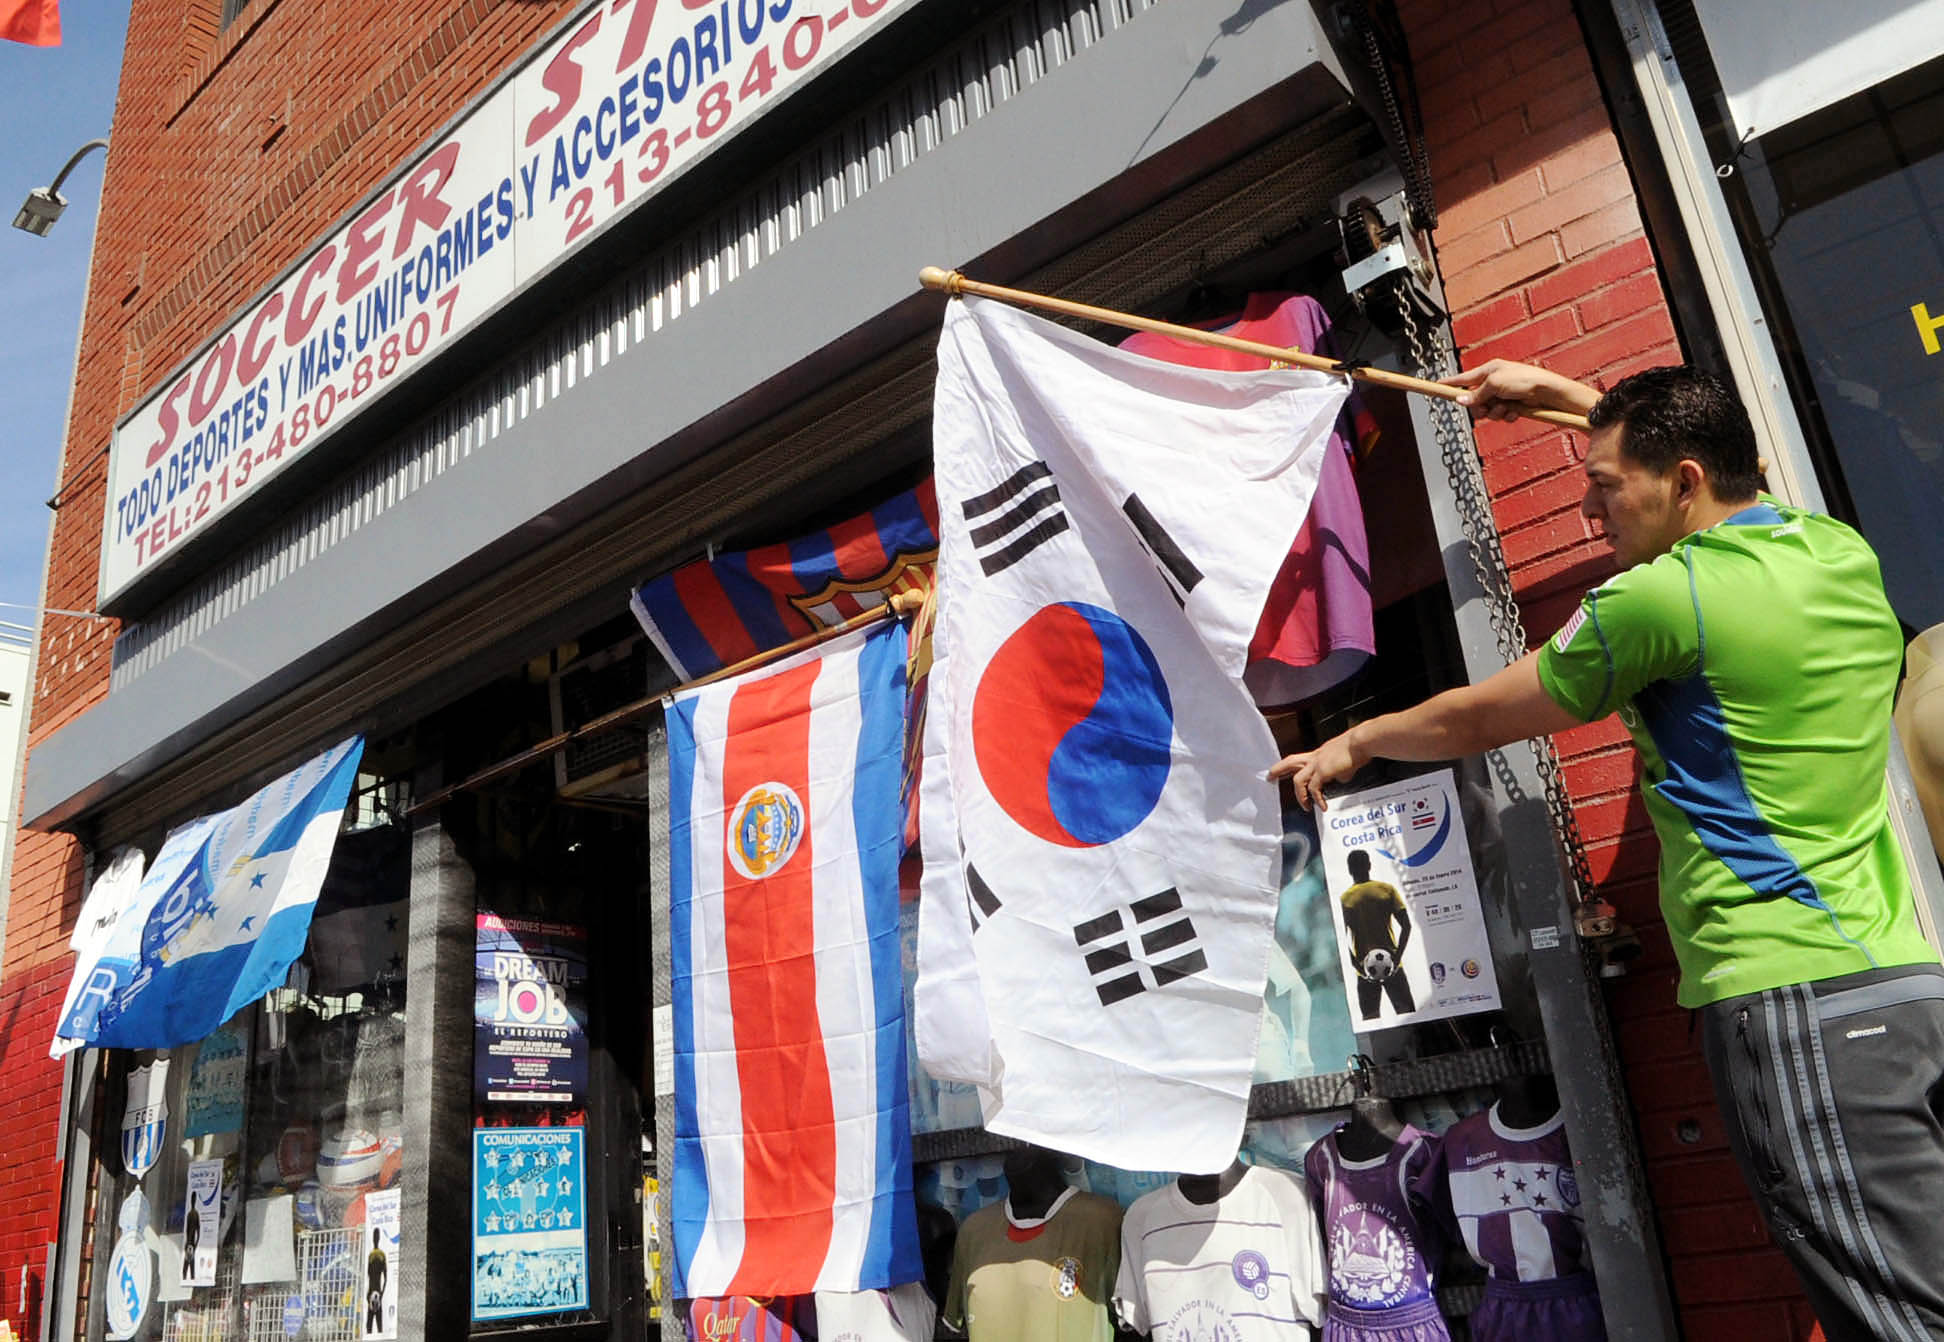 Korea vs. Costa Rica match in L.A. is getting a lot of interest from the Hispanic community also as both nations' flags are hanging outside of one local soccer shop. (Park Sang-hyuk)